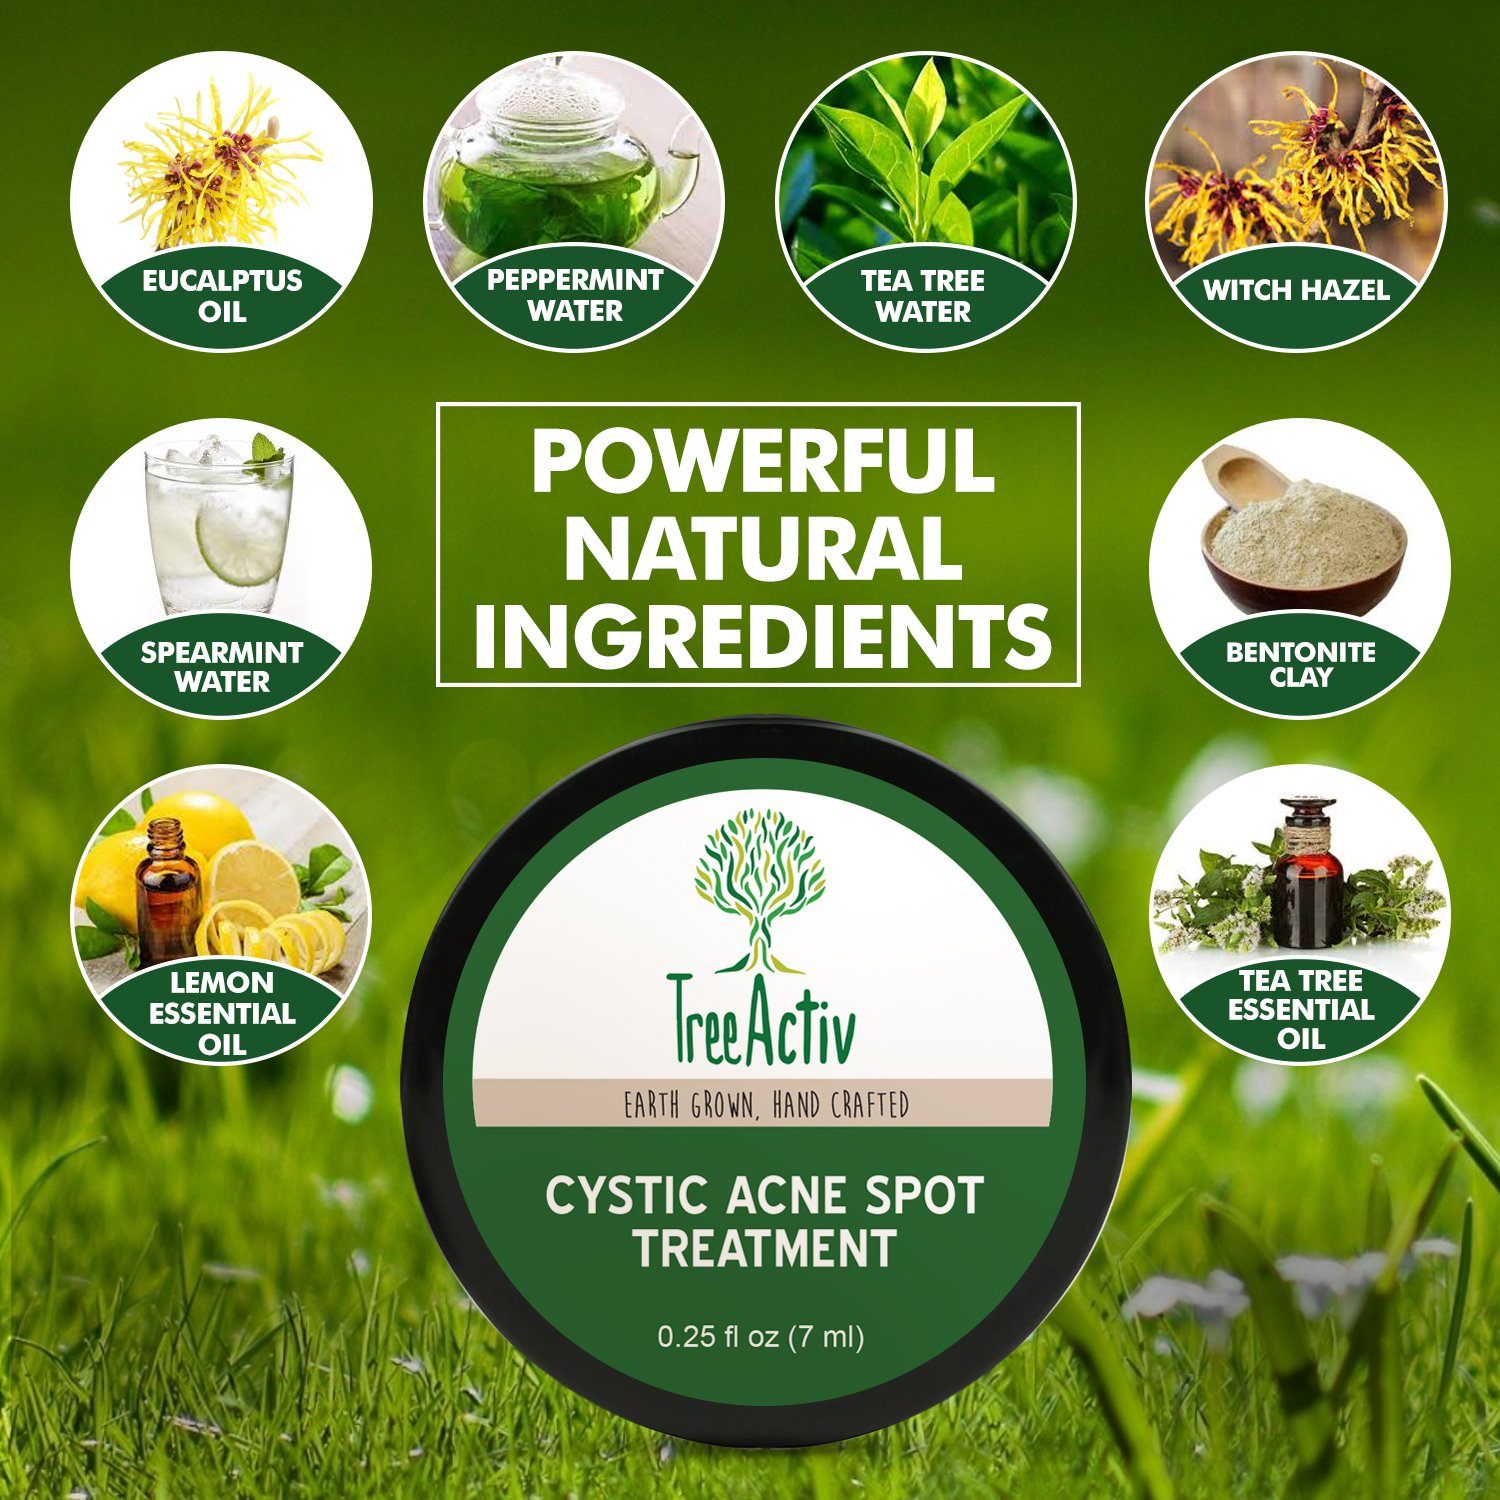 TreeActiv Cystic Acne Spot Treatment, Best Extra Strength Fast Acting Formula for Clearing Severe Acne from Face and Body, Gentle Enough for Sensitive Skin, Adults, Teens, Men, Women (0.25 Ounce) by TreeActiv (Image #3)